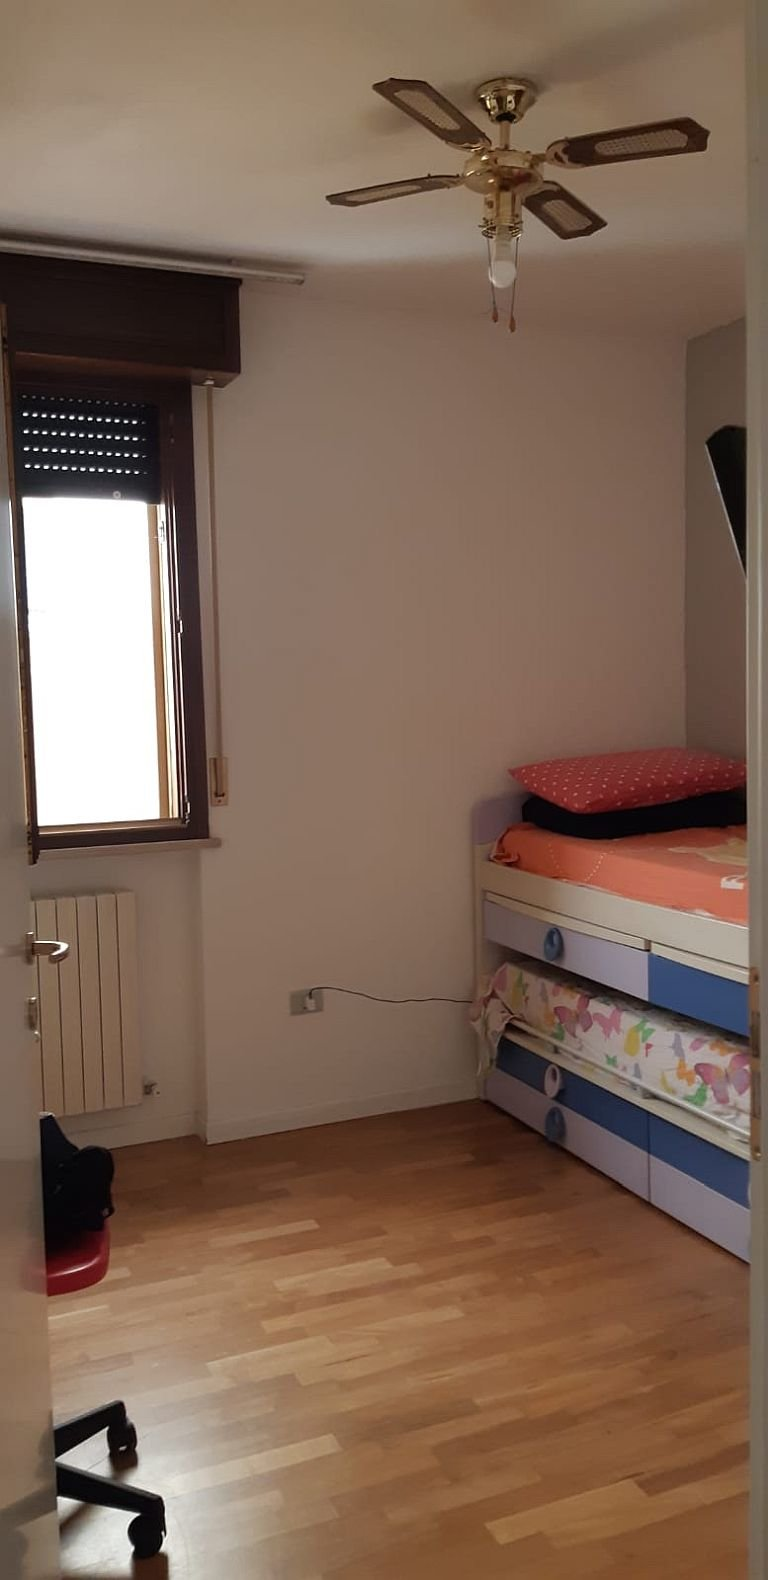 Rental Apartment - Fano - Italy